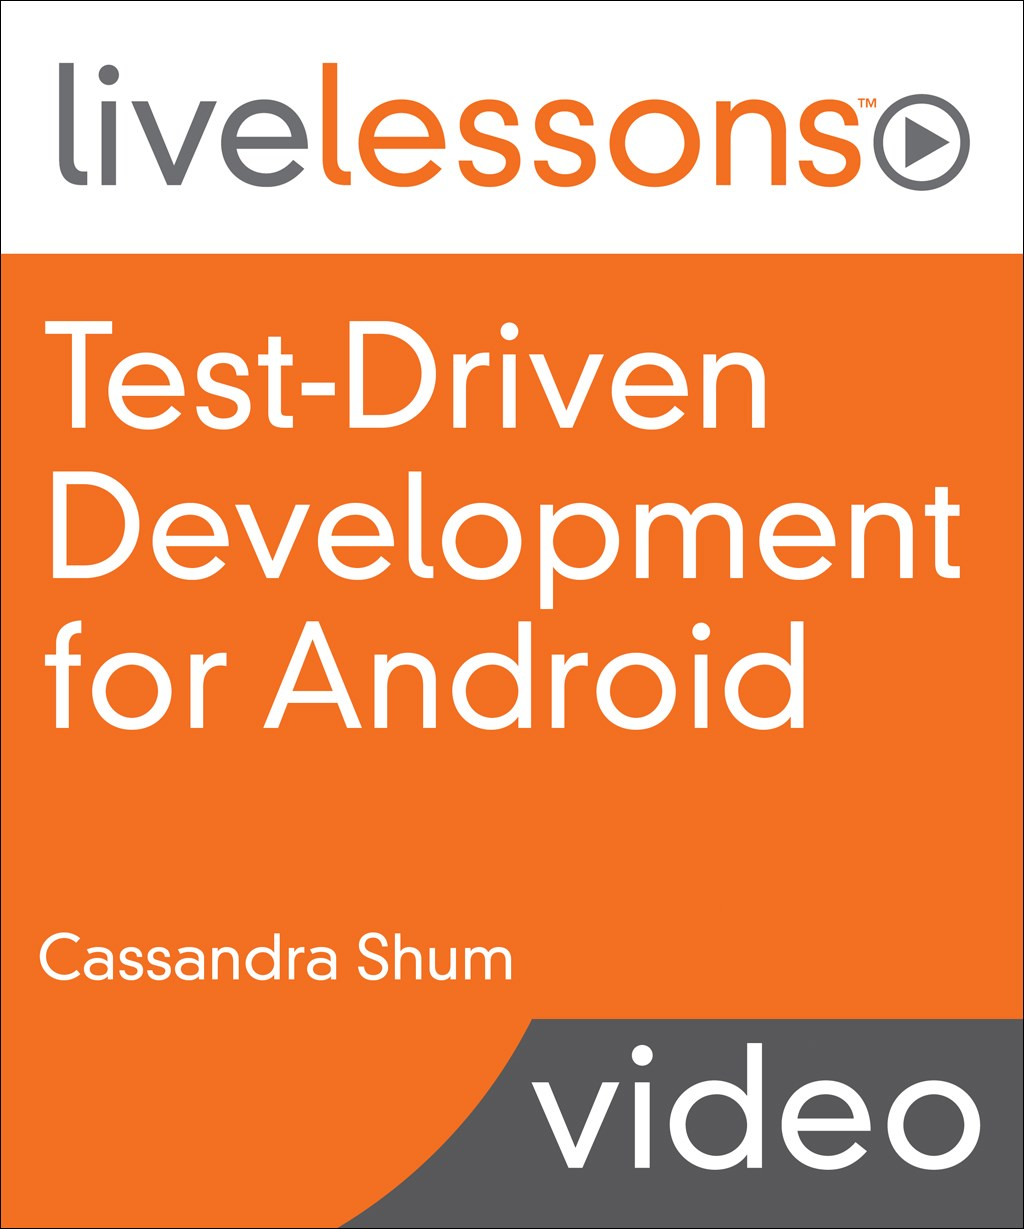 Test-Driven Development (TDD) for Android LiveLessons